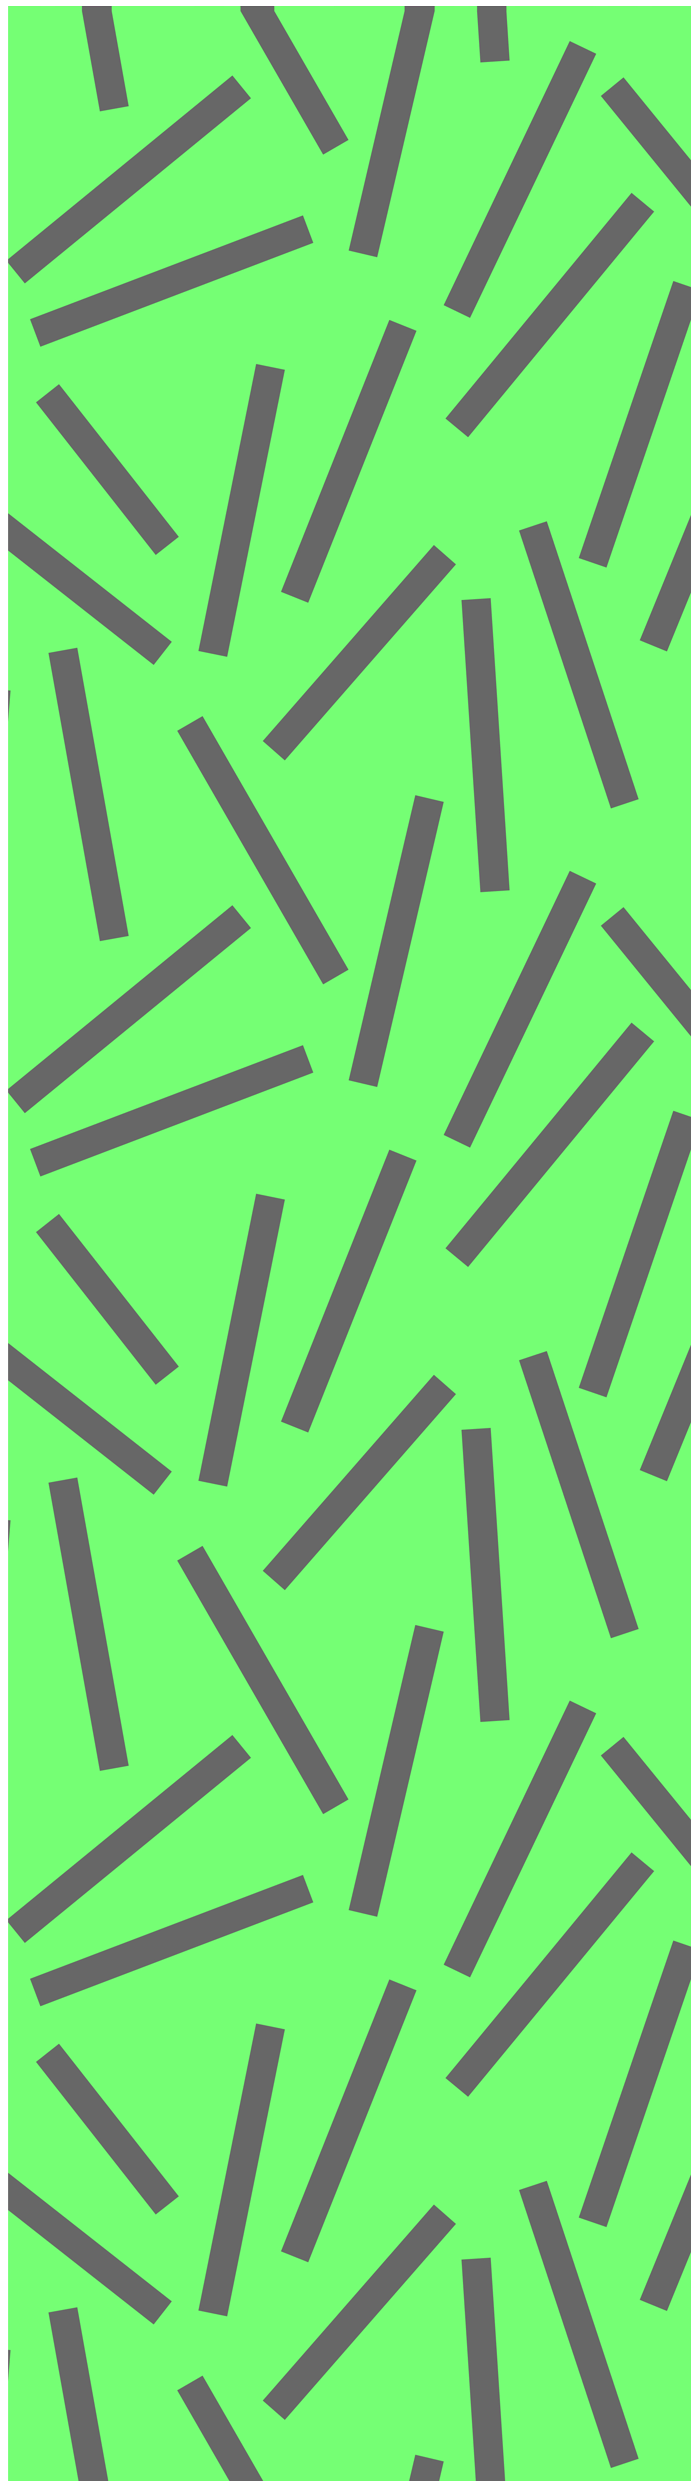 Neon_Stripes.png?187